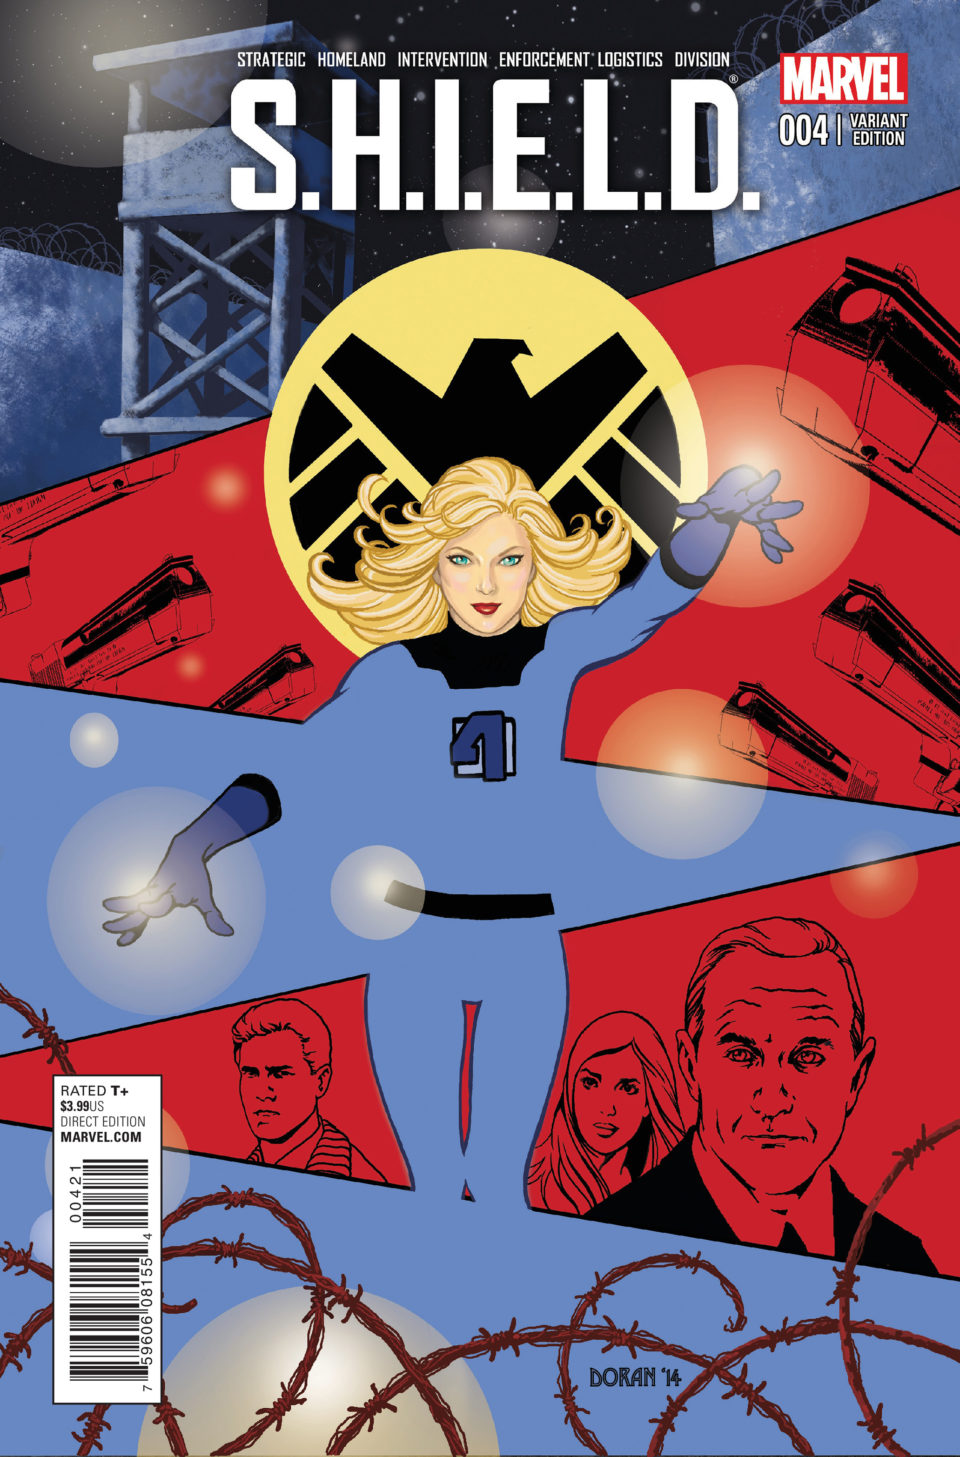 2015.06-S.H.I.E.L.D.4-ColleenDoran-Women.of.Marvel.Variant